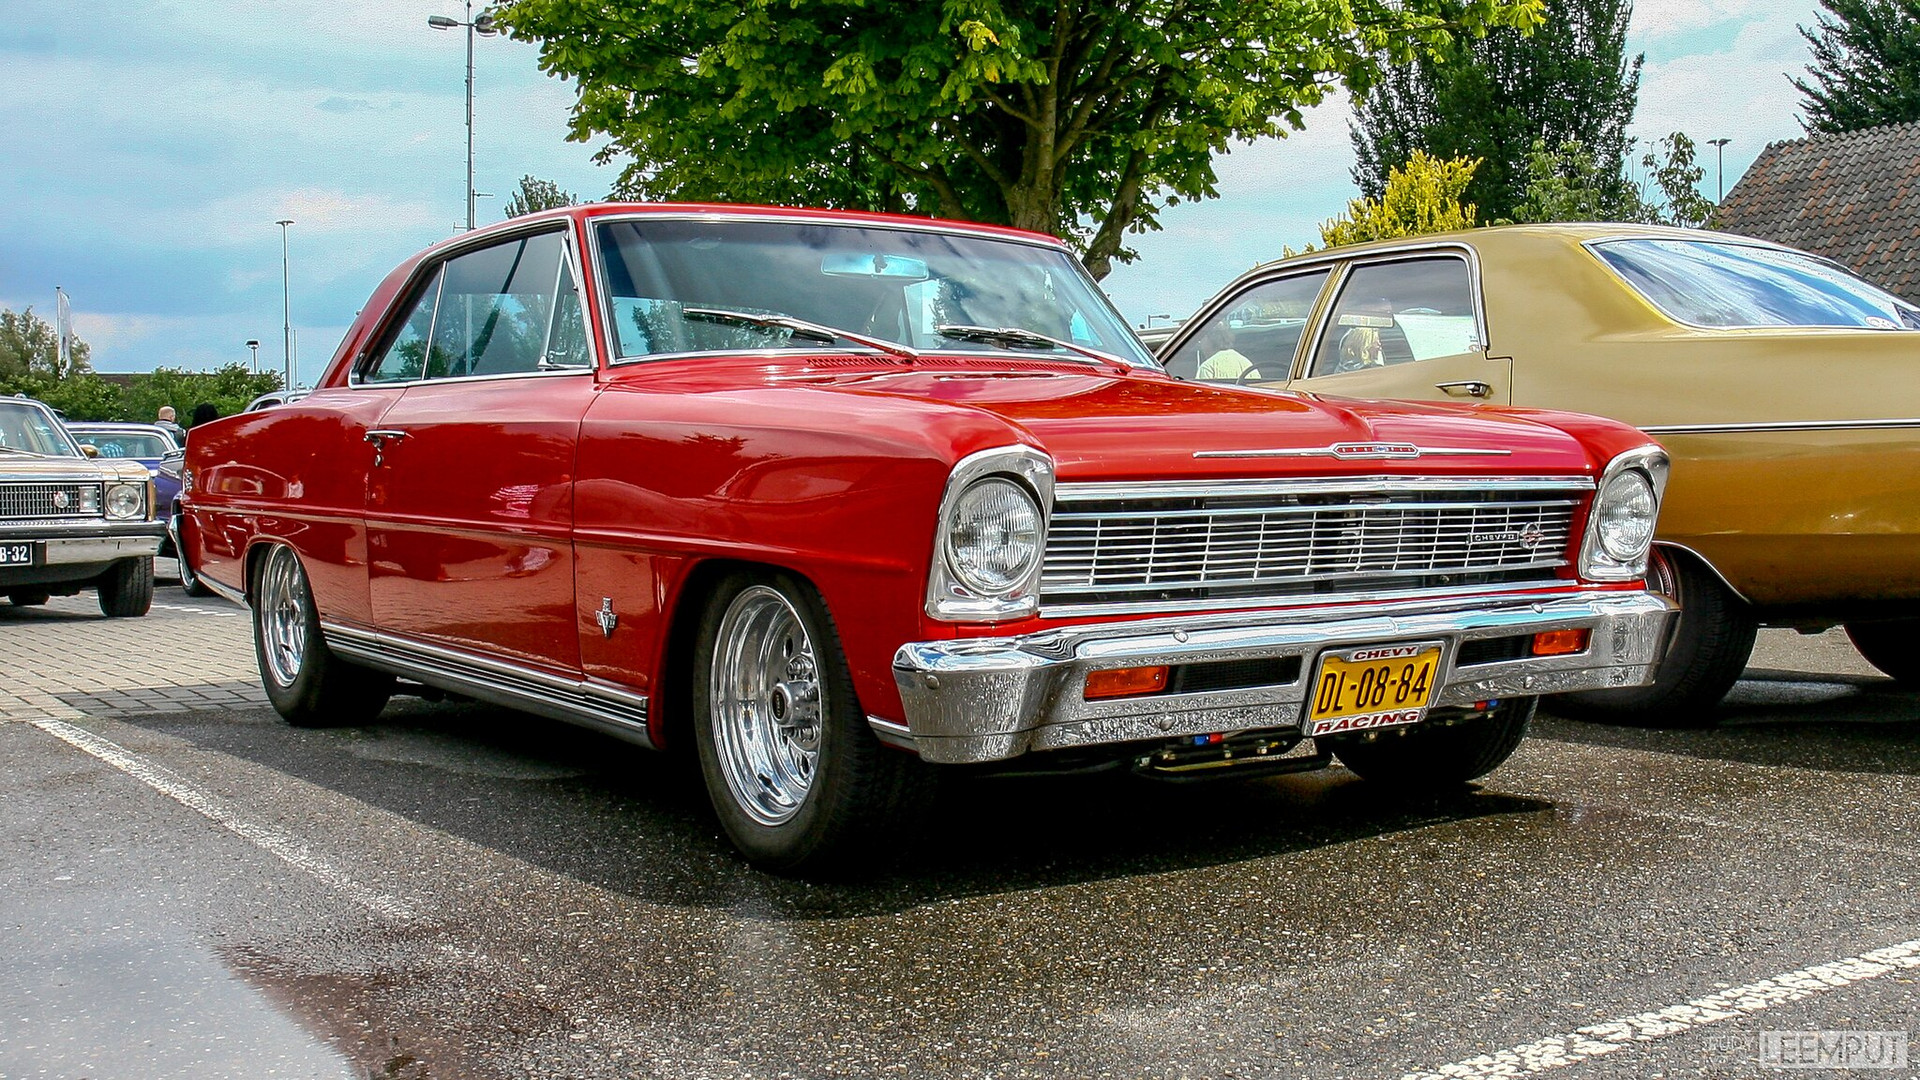 1966 | DL-08-84 | Chevrolet Nova II Super Sport